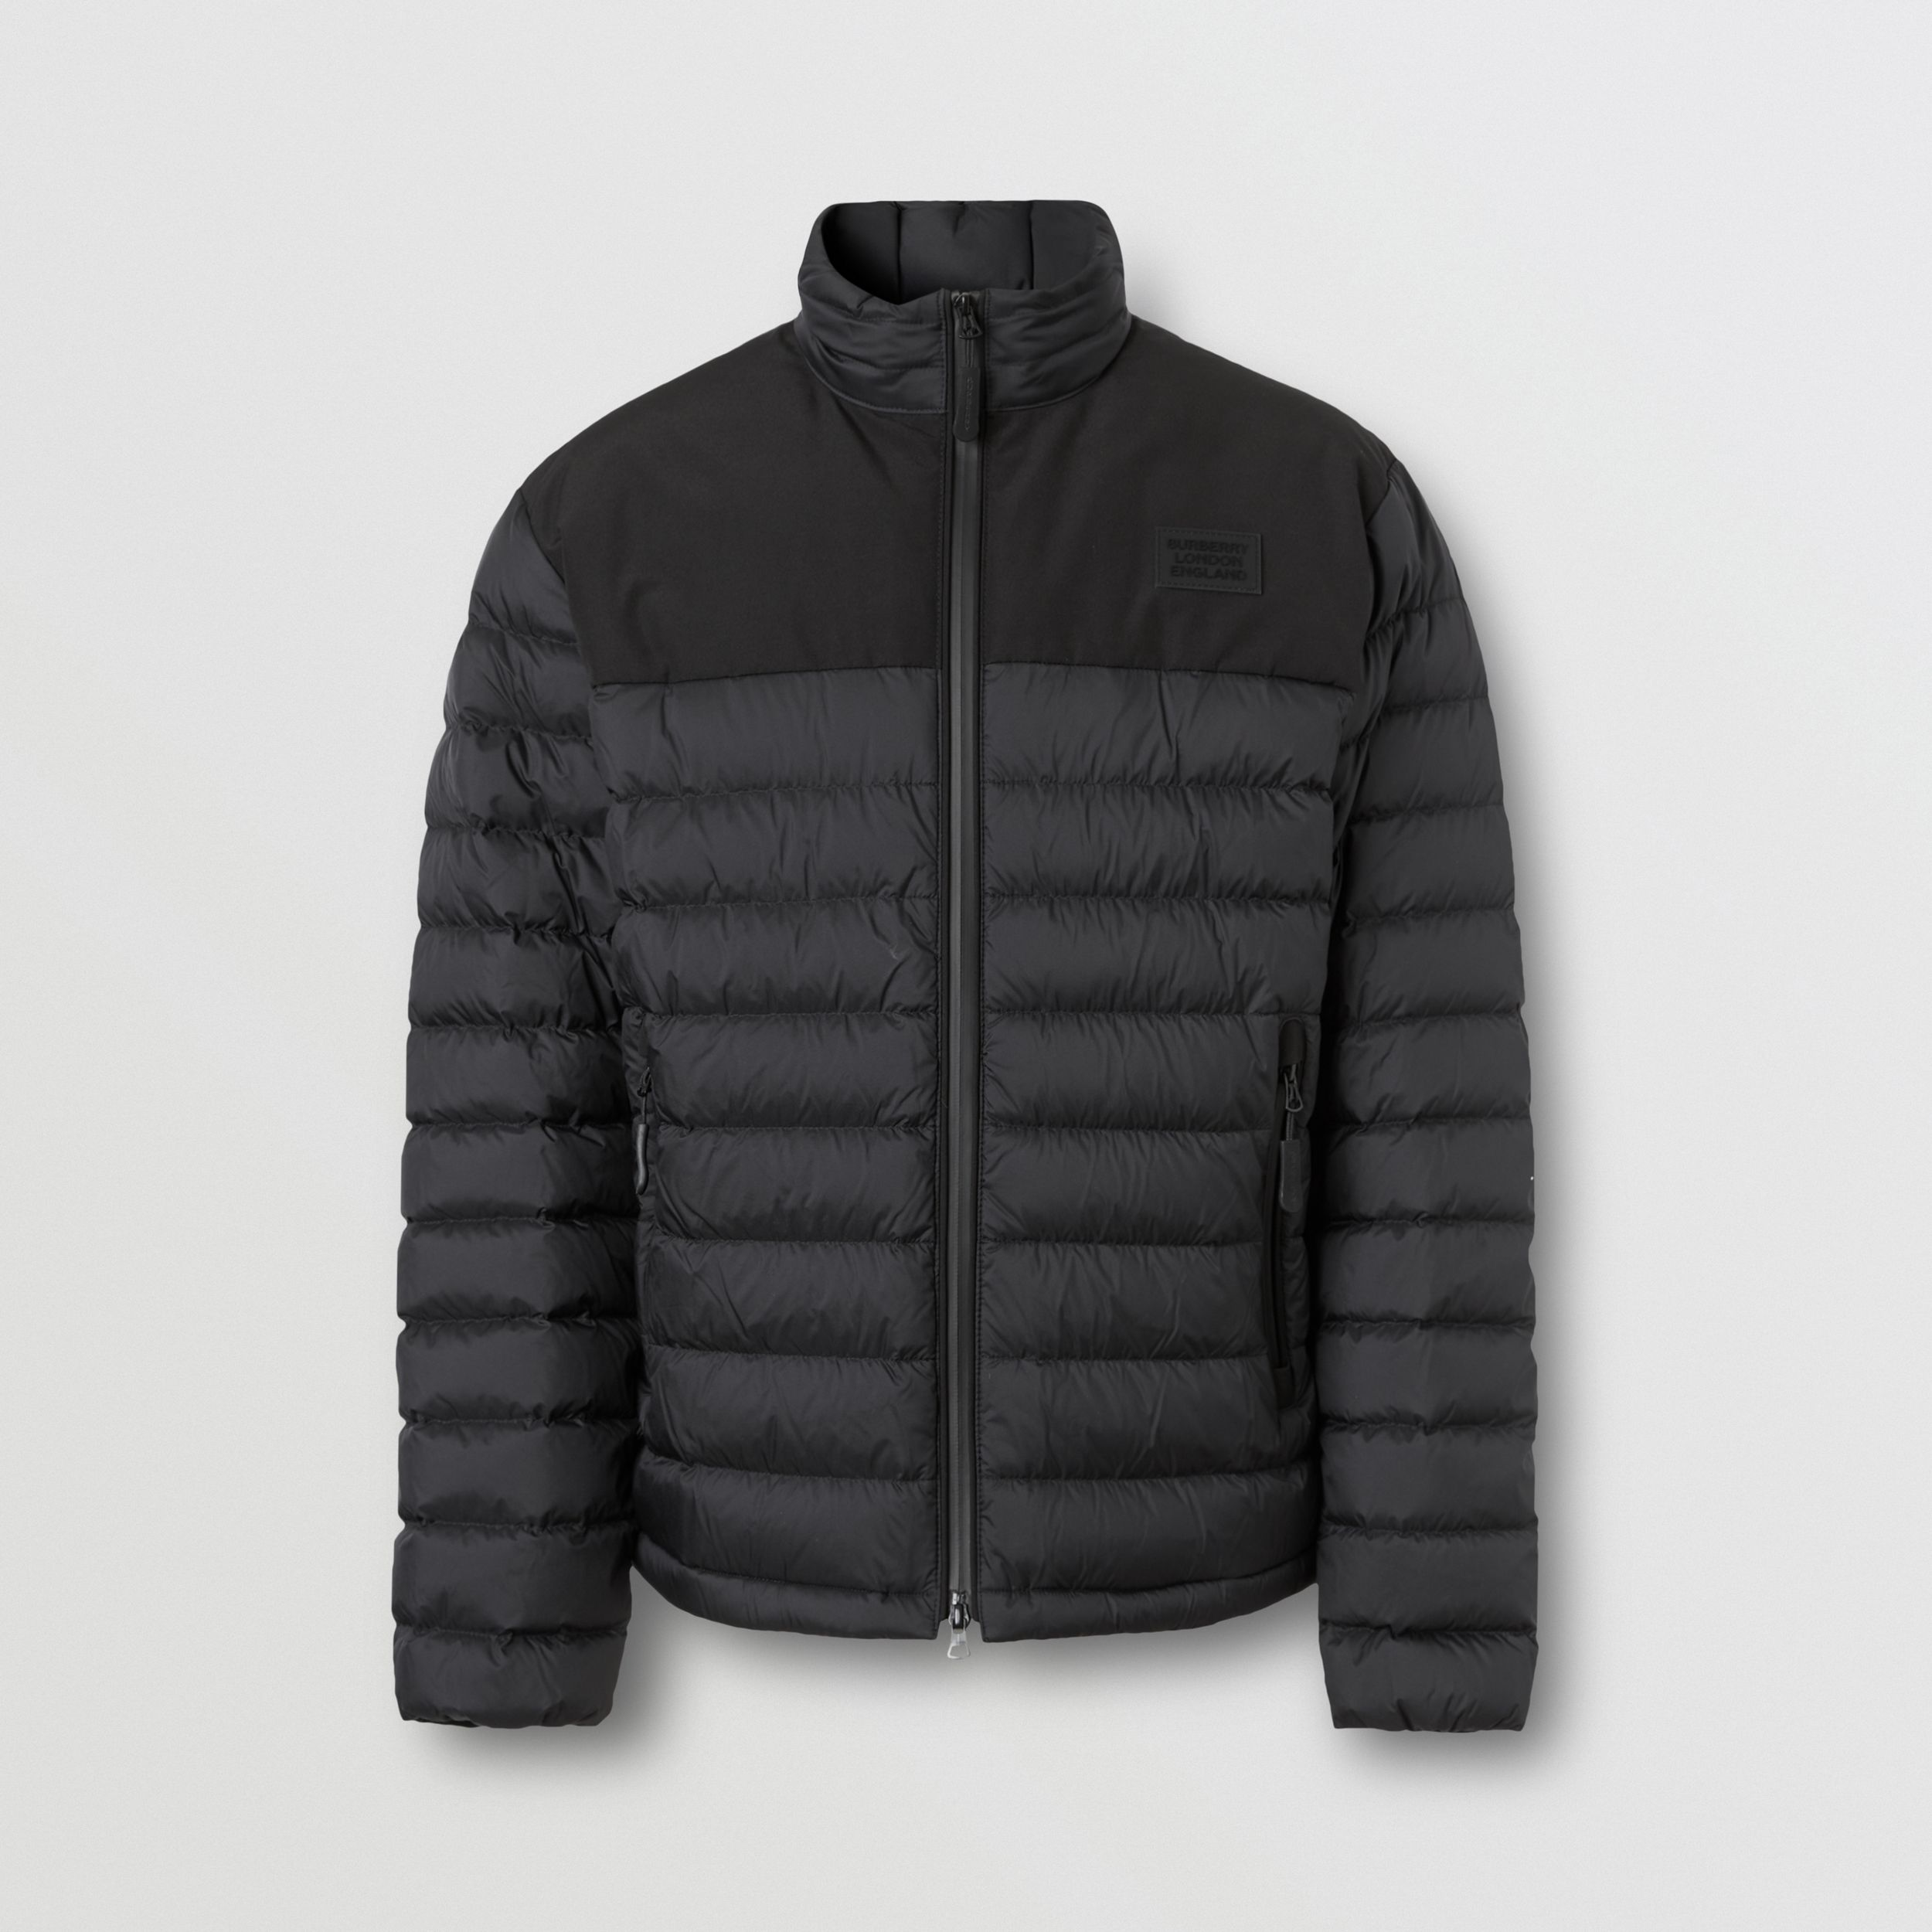 Logo Appliqué Lightweight Puffer Jacket in Black - Men | Burberry Singapore - 4